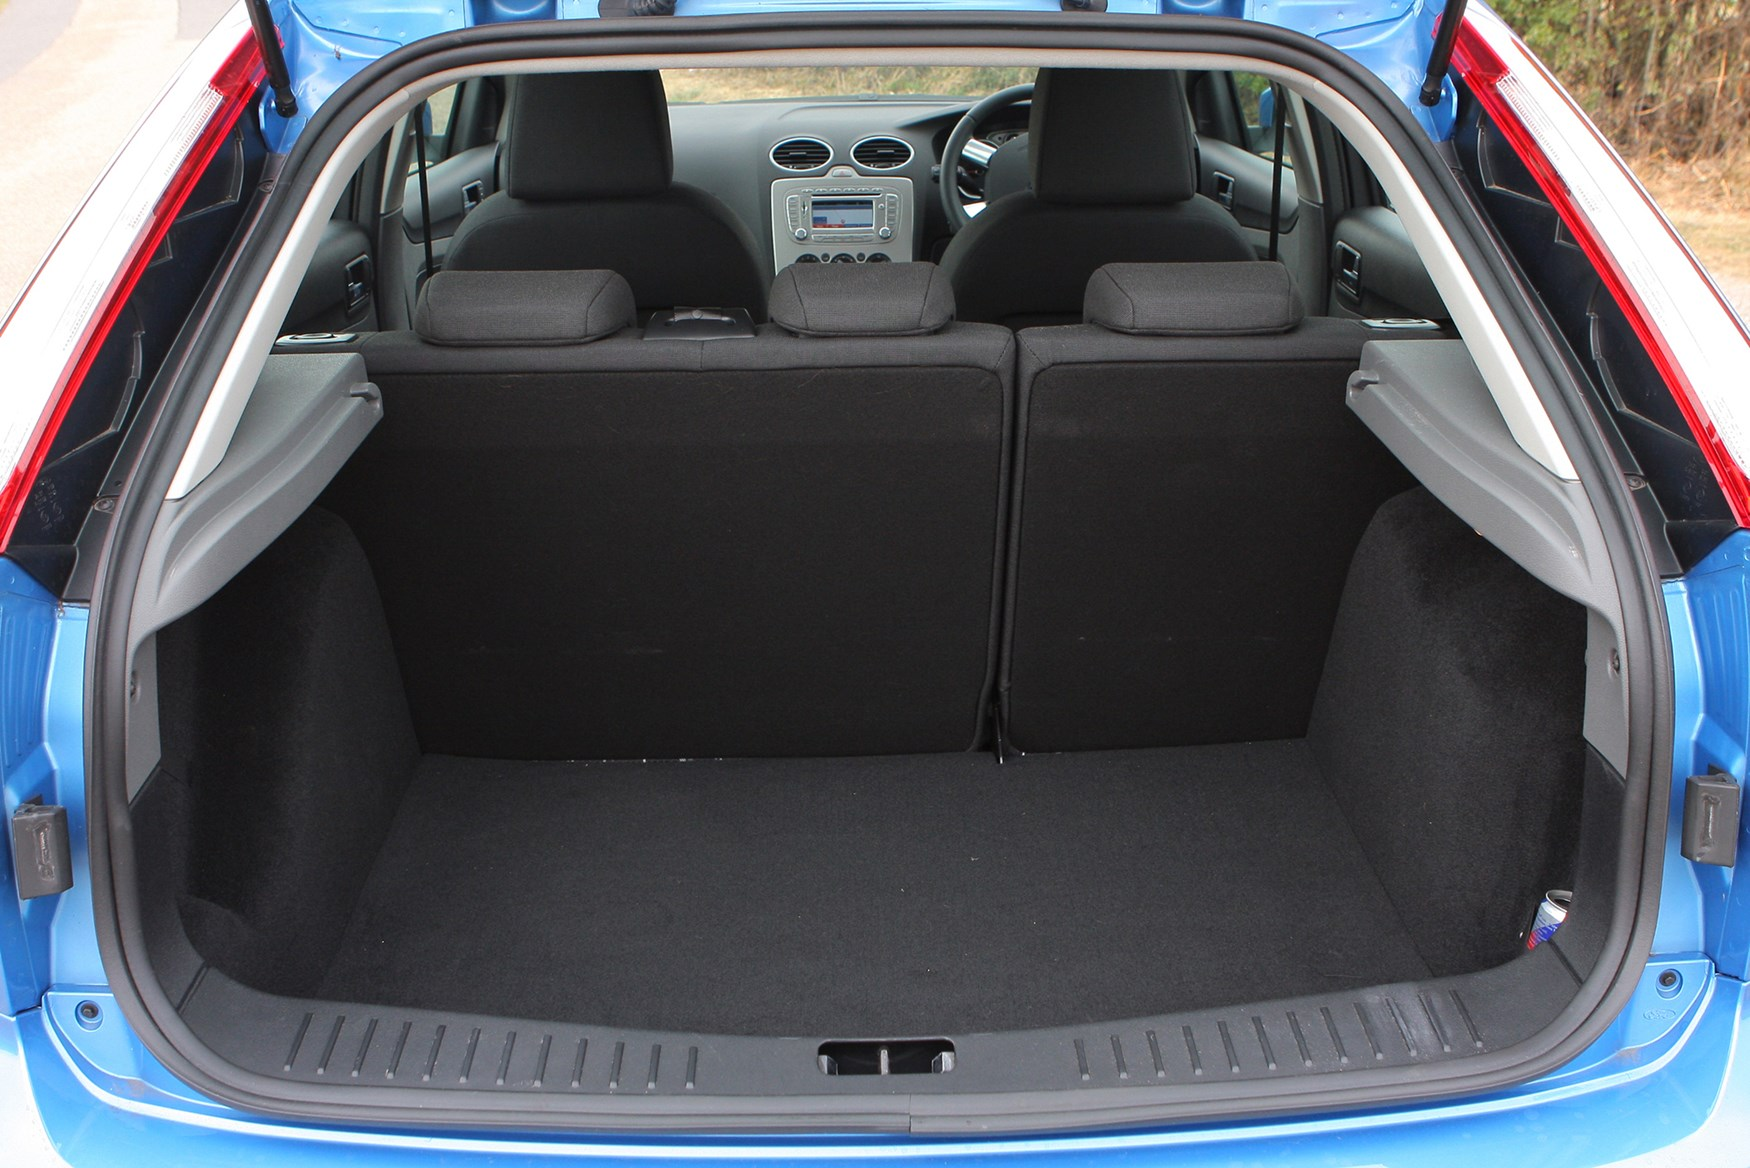 Ford Focus Hatchback 2005 2011 Features Equipment And Headlight Wiring Diagram 2008 Stereo View All Images Of The 05 11